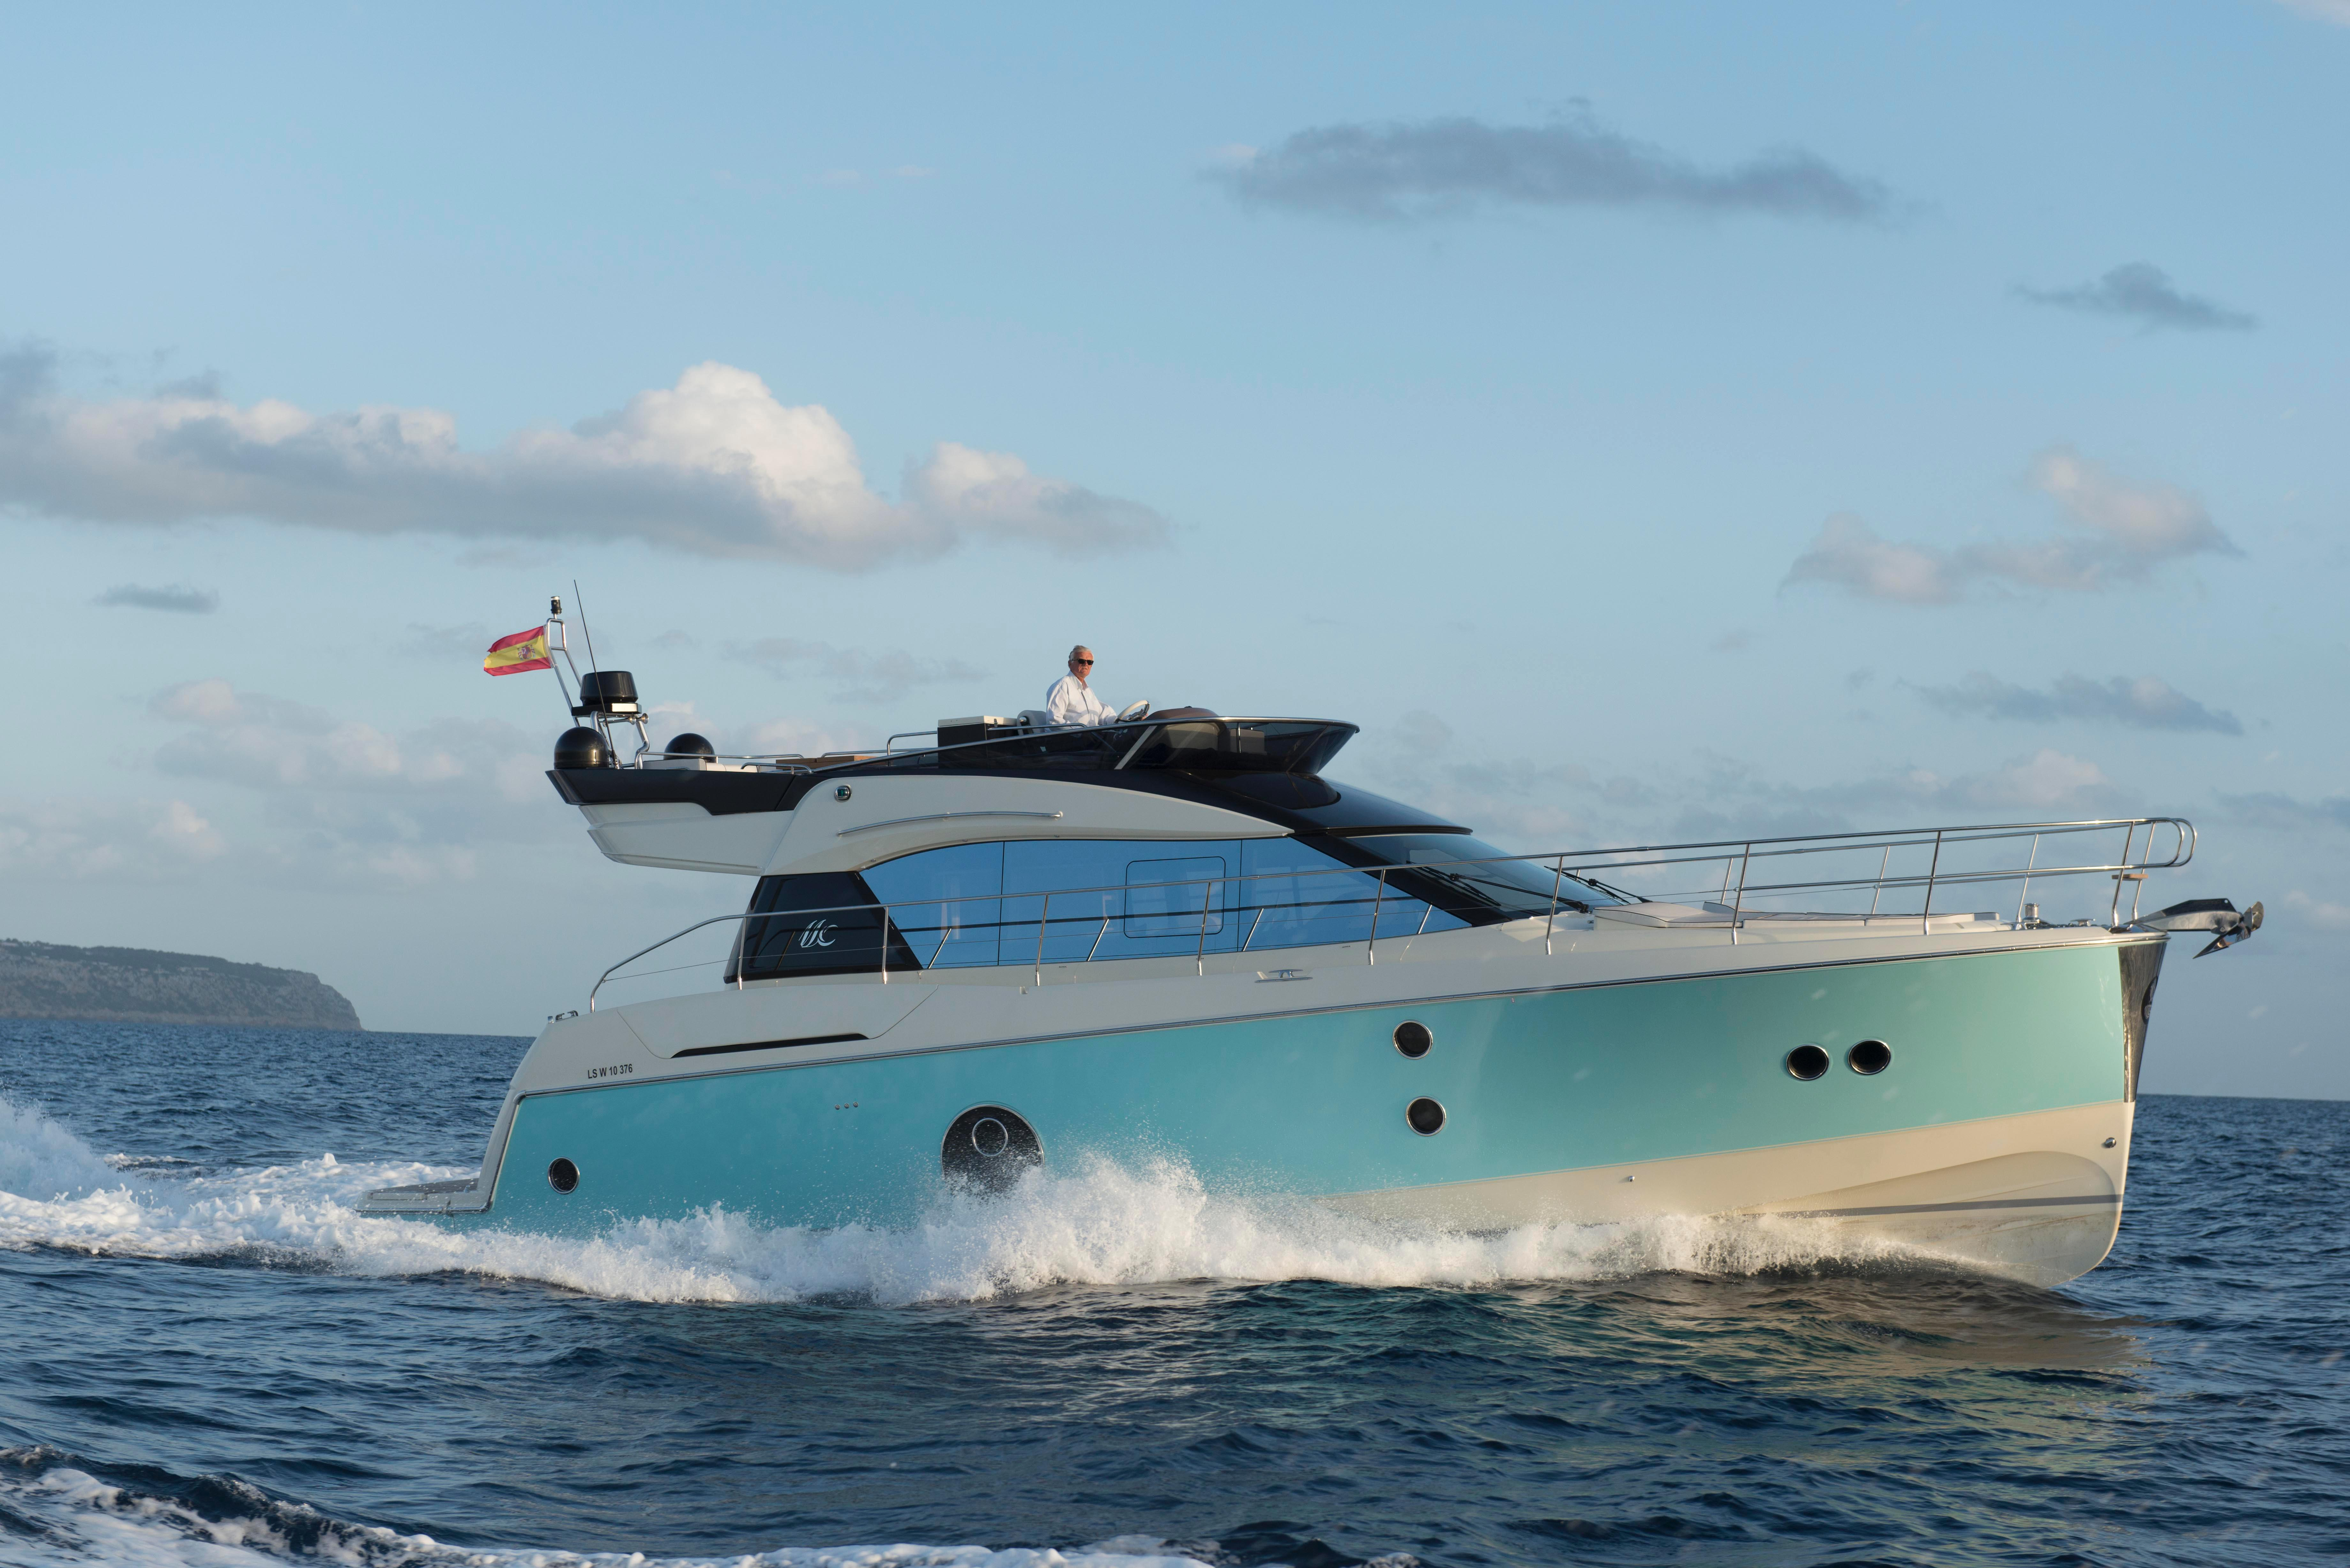 The MC5 Hull Design Provides A 4 Degree Bow Rise Compared To Her Competitions 6 Or More Degree Bow Rise.